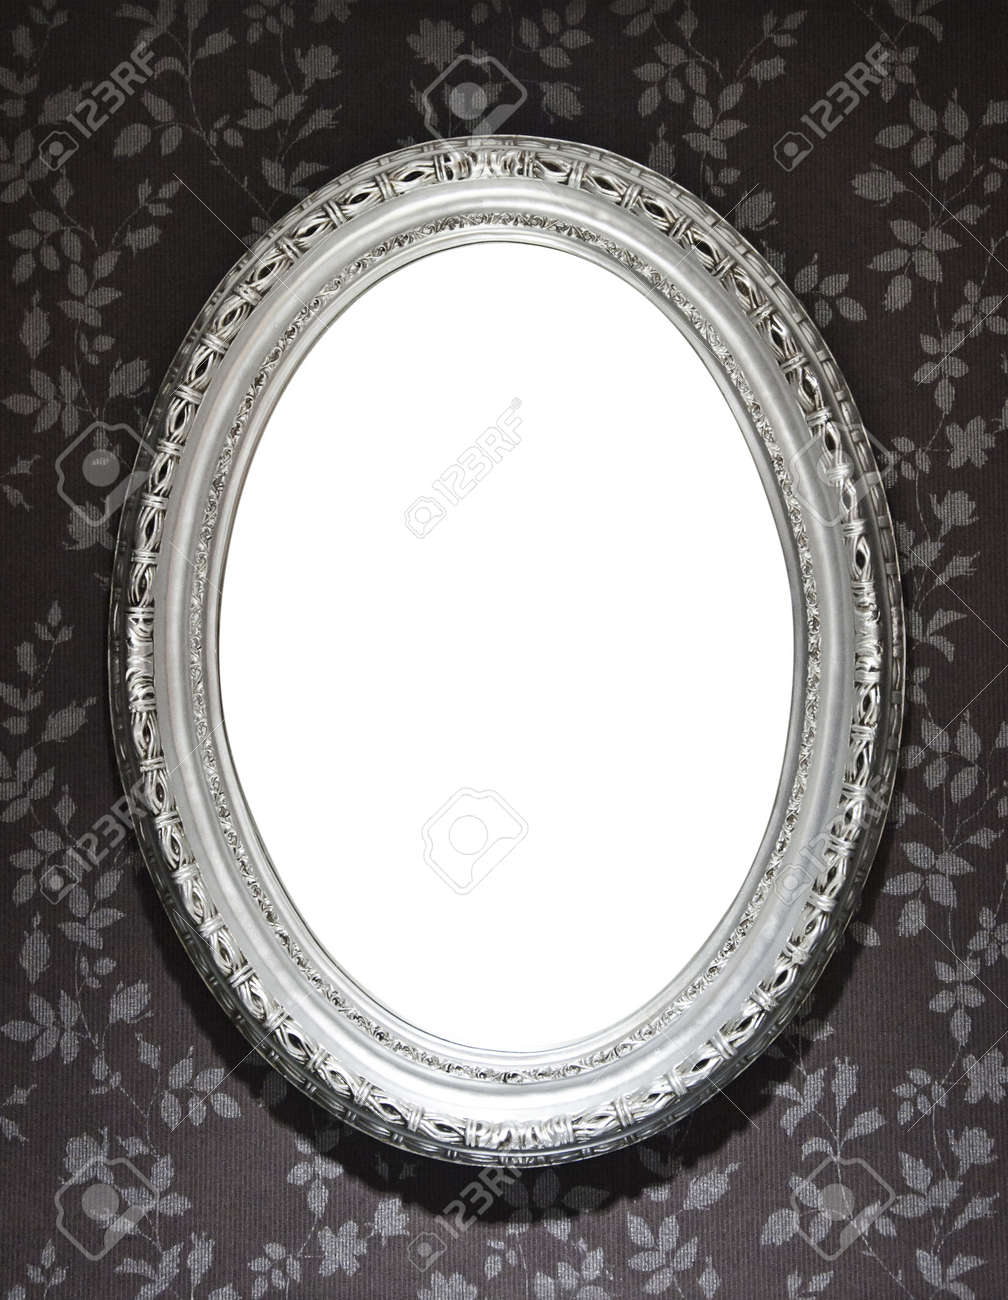 Blank mirror frame on a wall covered with floral wallpaper blank mirror frame on a wall covered with floral wallpaper clipping paths included stock photo amipublicfo Gallery